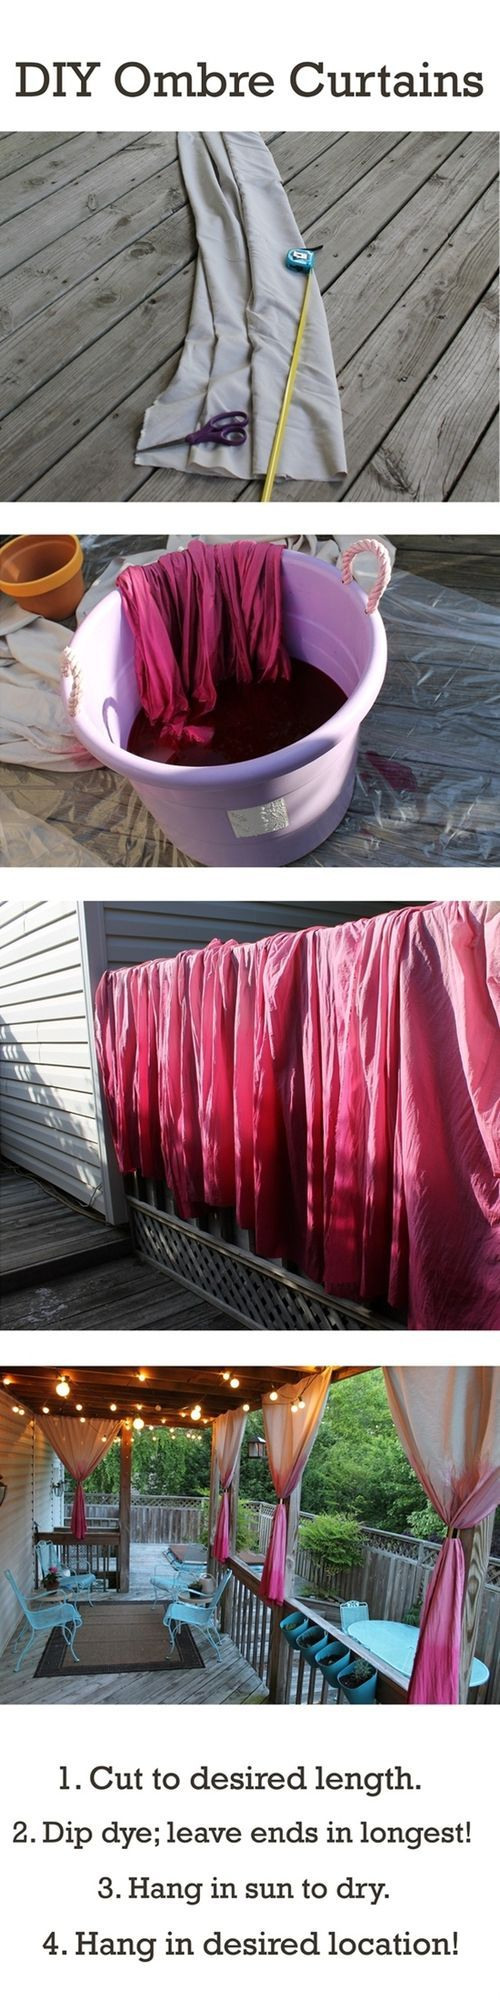 #DIY #Ombre #Curtains